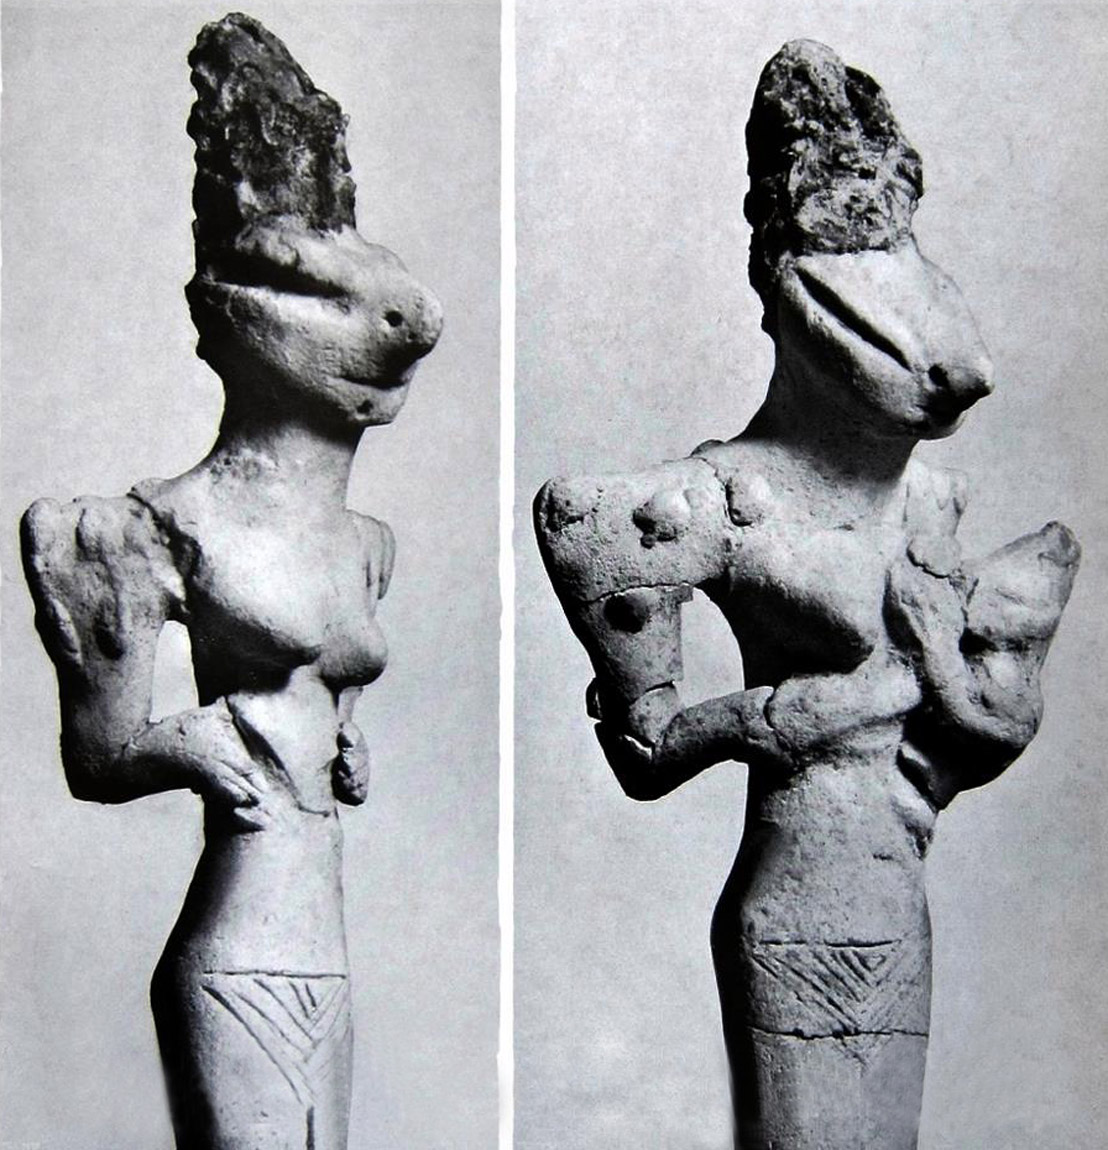 Clay-figurines-with-reptilian-looking-heads-Ubaid-period-5900BC-4000BC.jpg